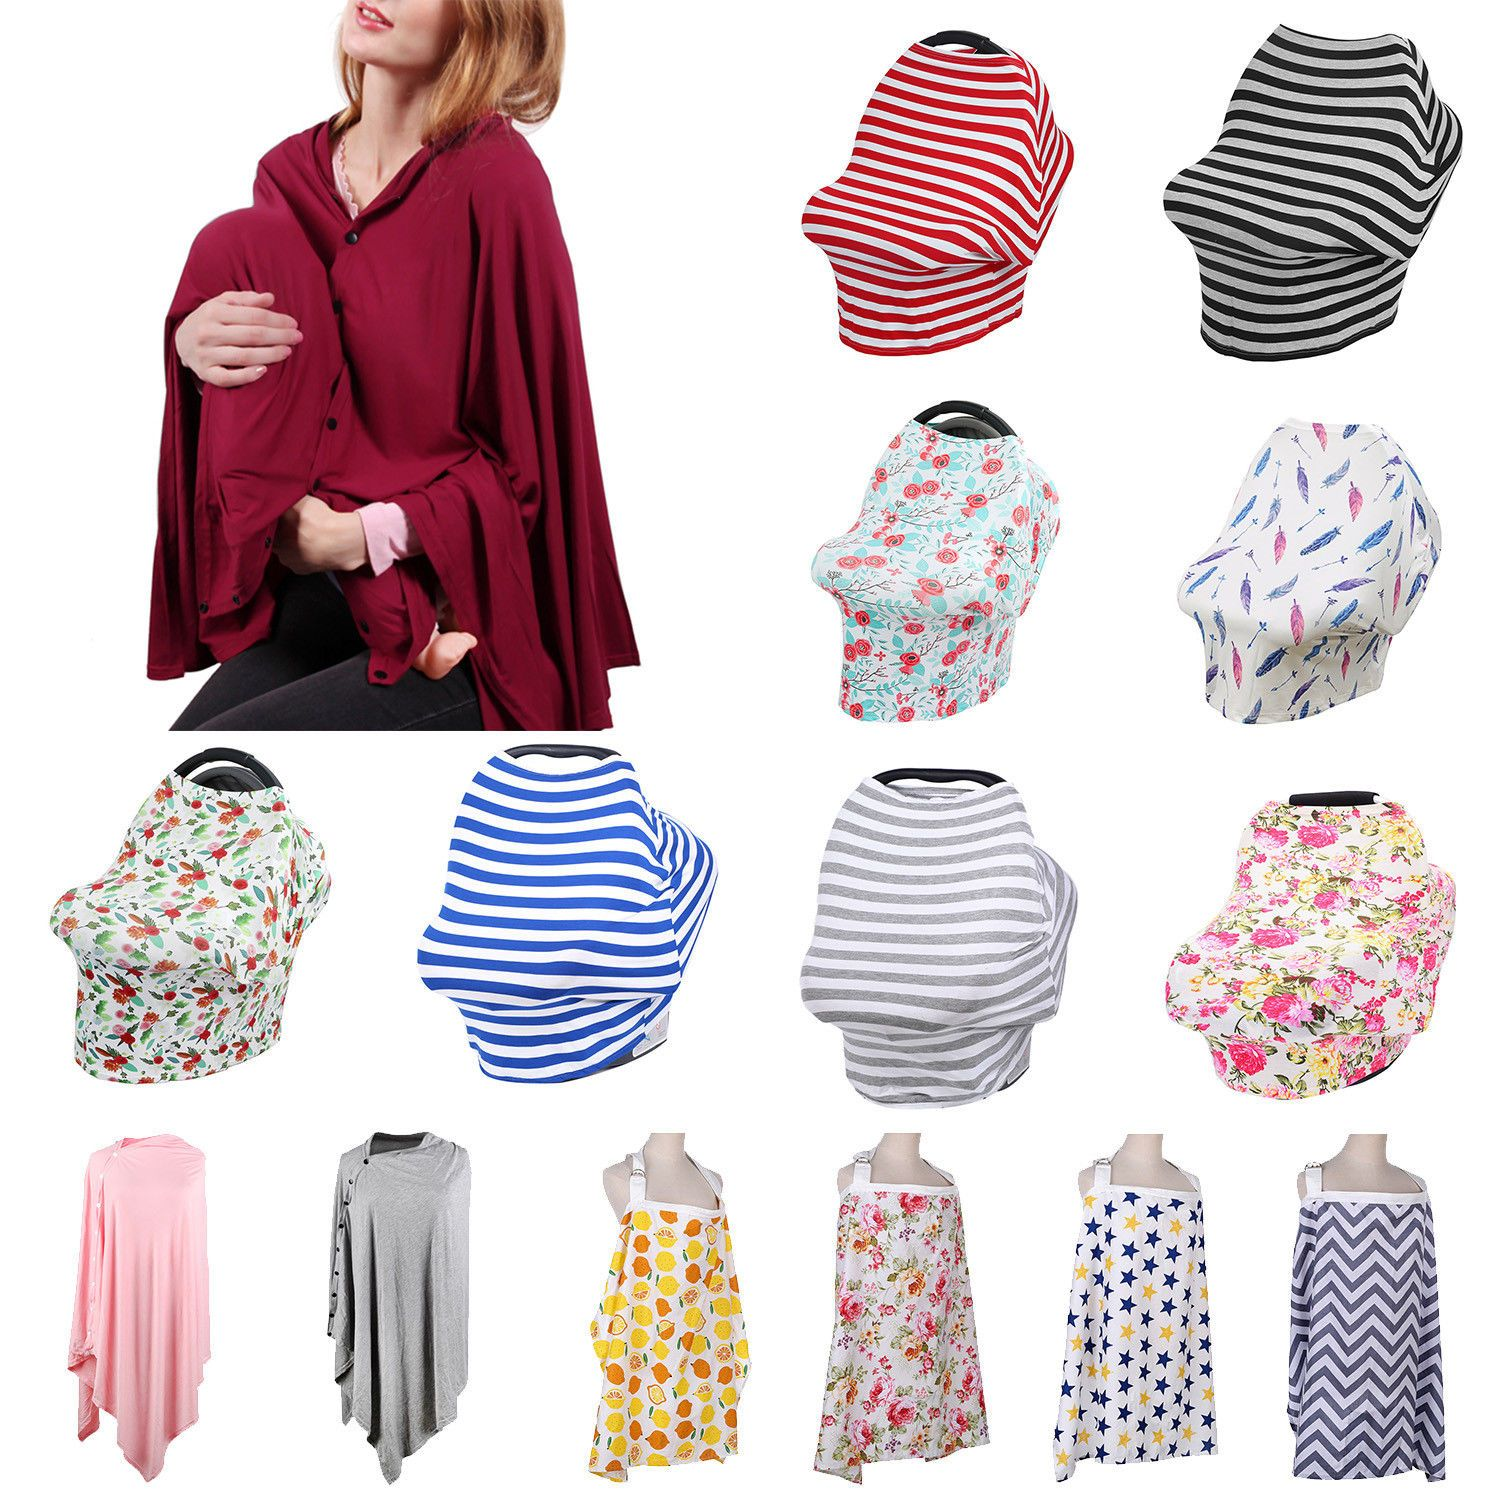 90eeaa36f3e41 Nursing Covers Blankets 184340: Baby Mum Breastfeeding Cover Multiuse  Nursing Canopy Blanket Apron Carrying Case